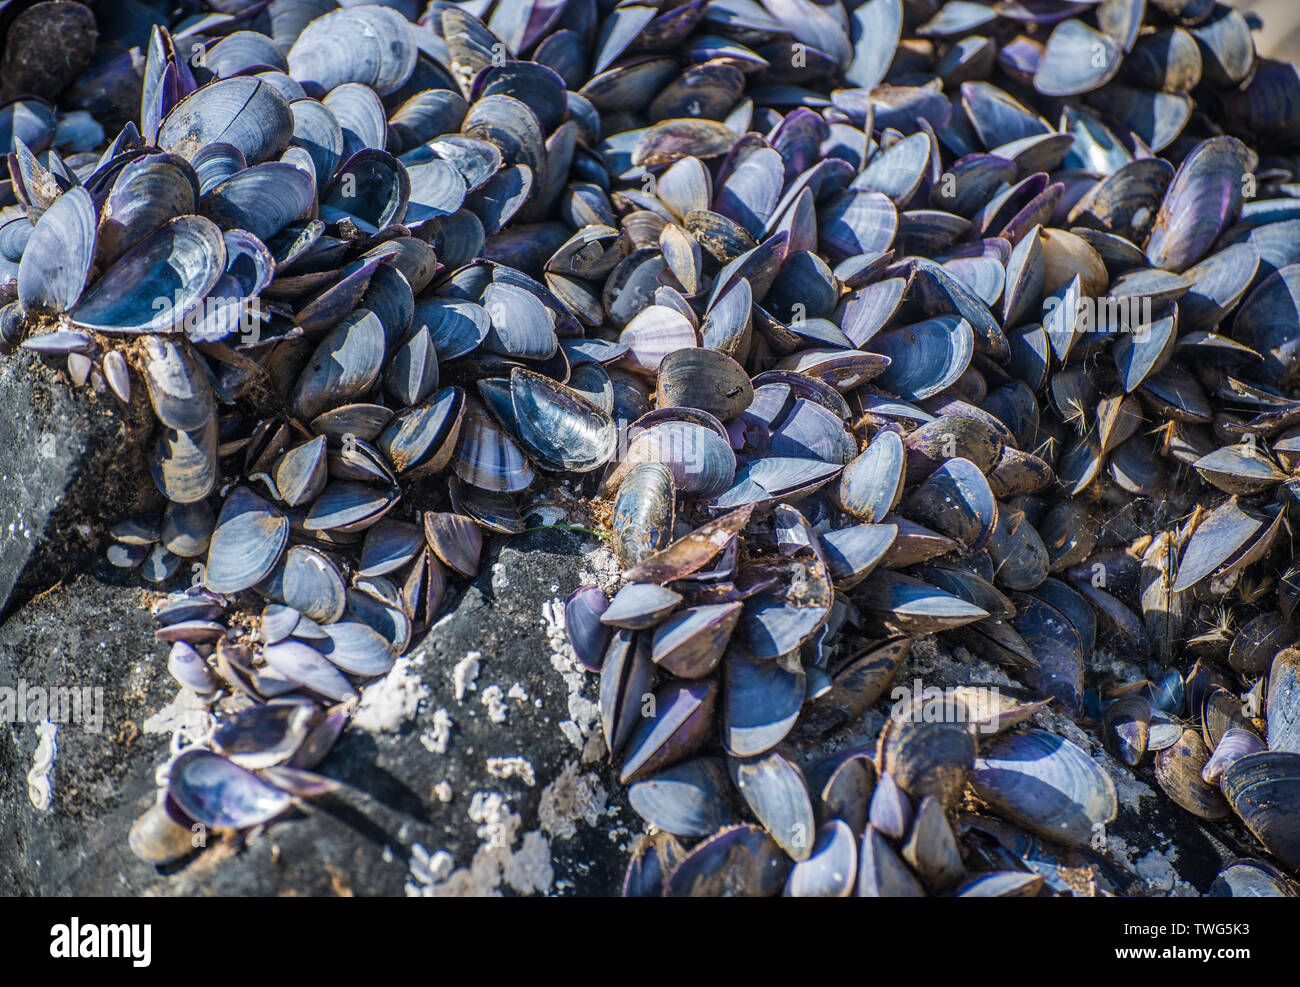 Dried empty shells of molluscs. Selective focus. - Stock Image